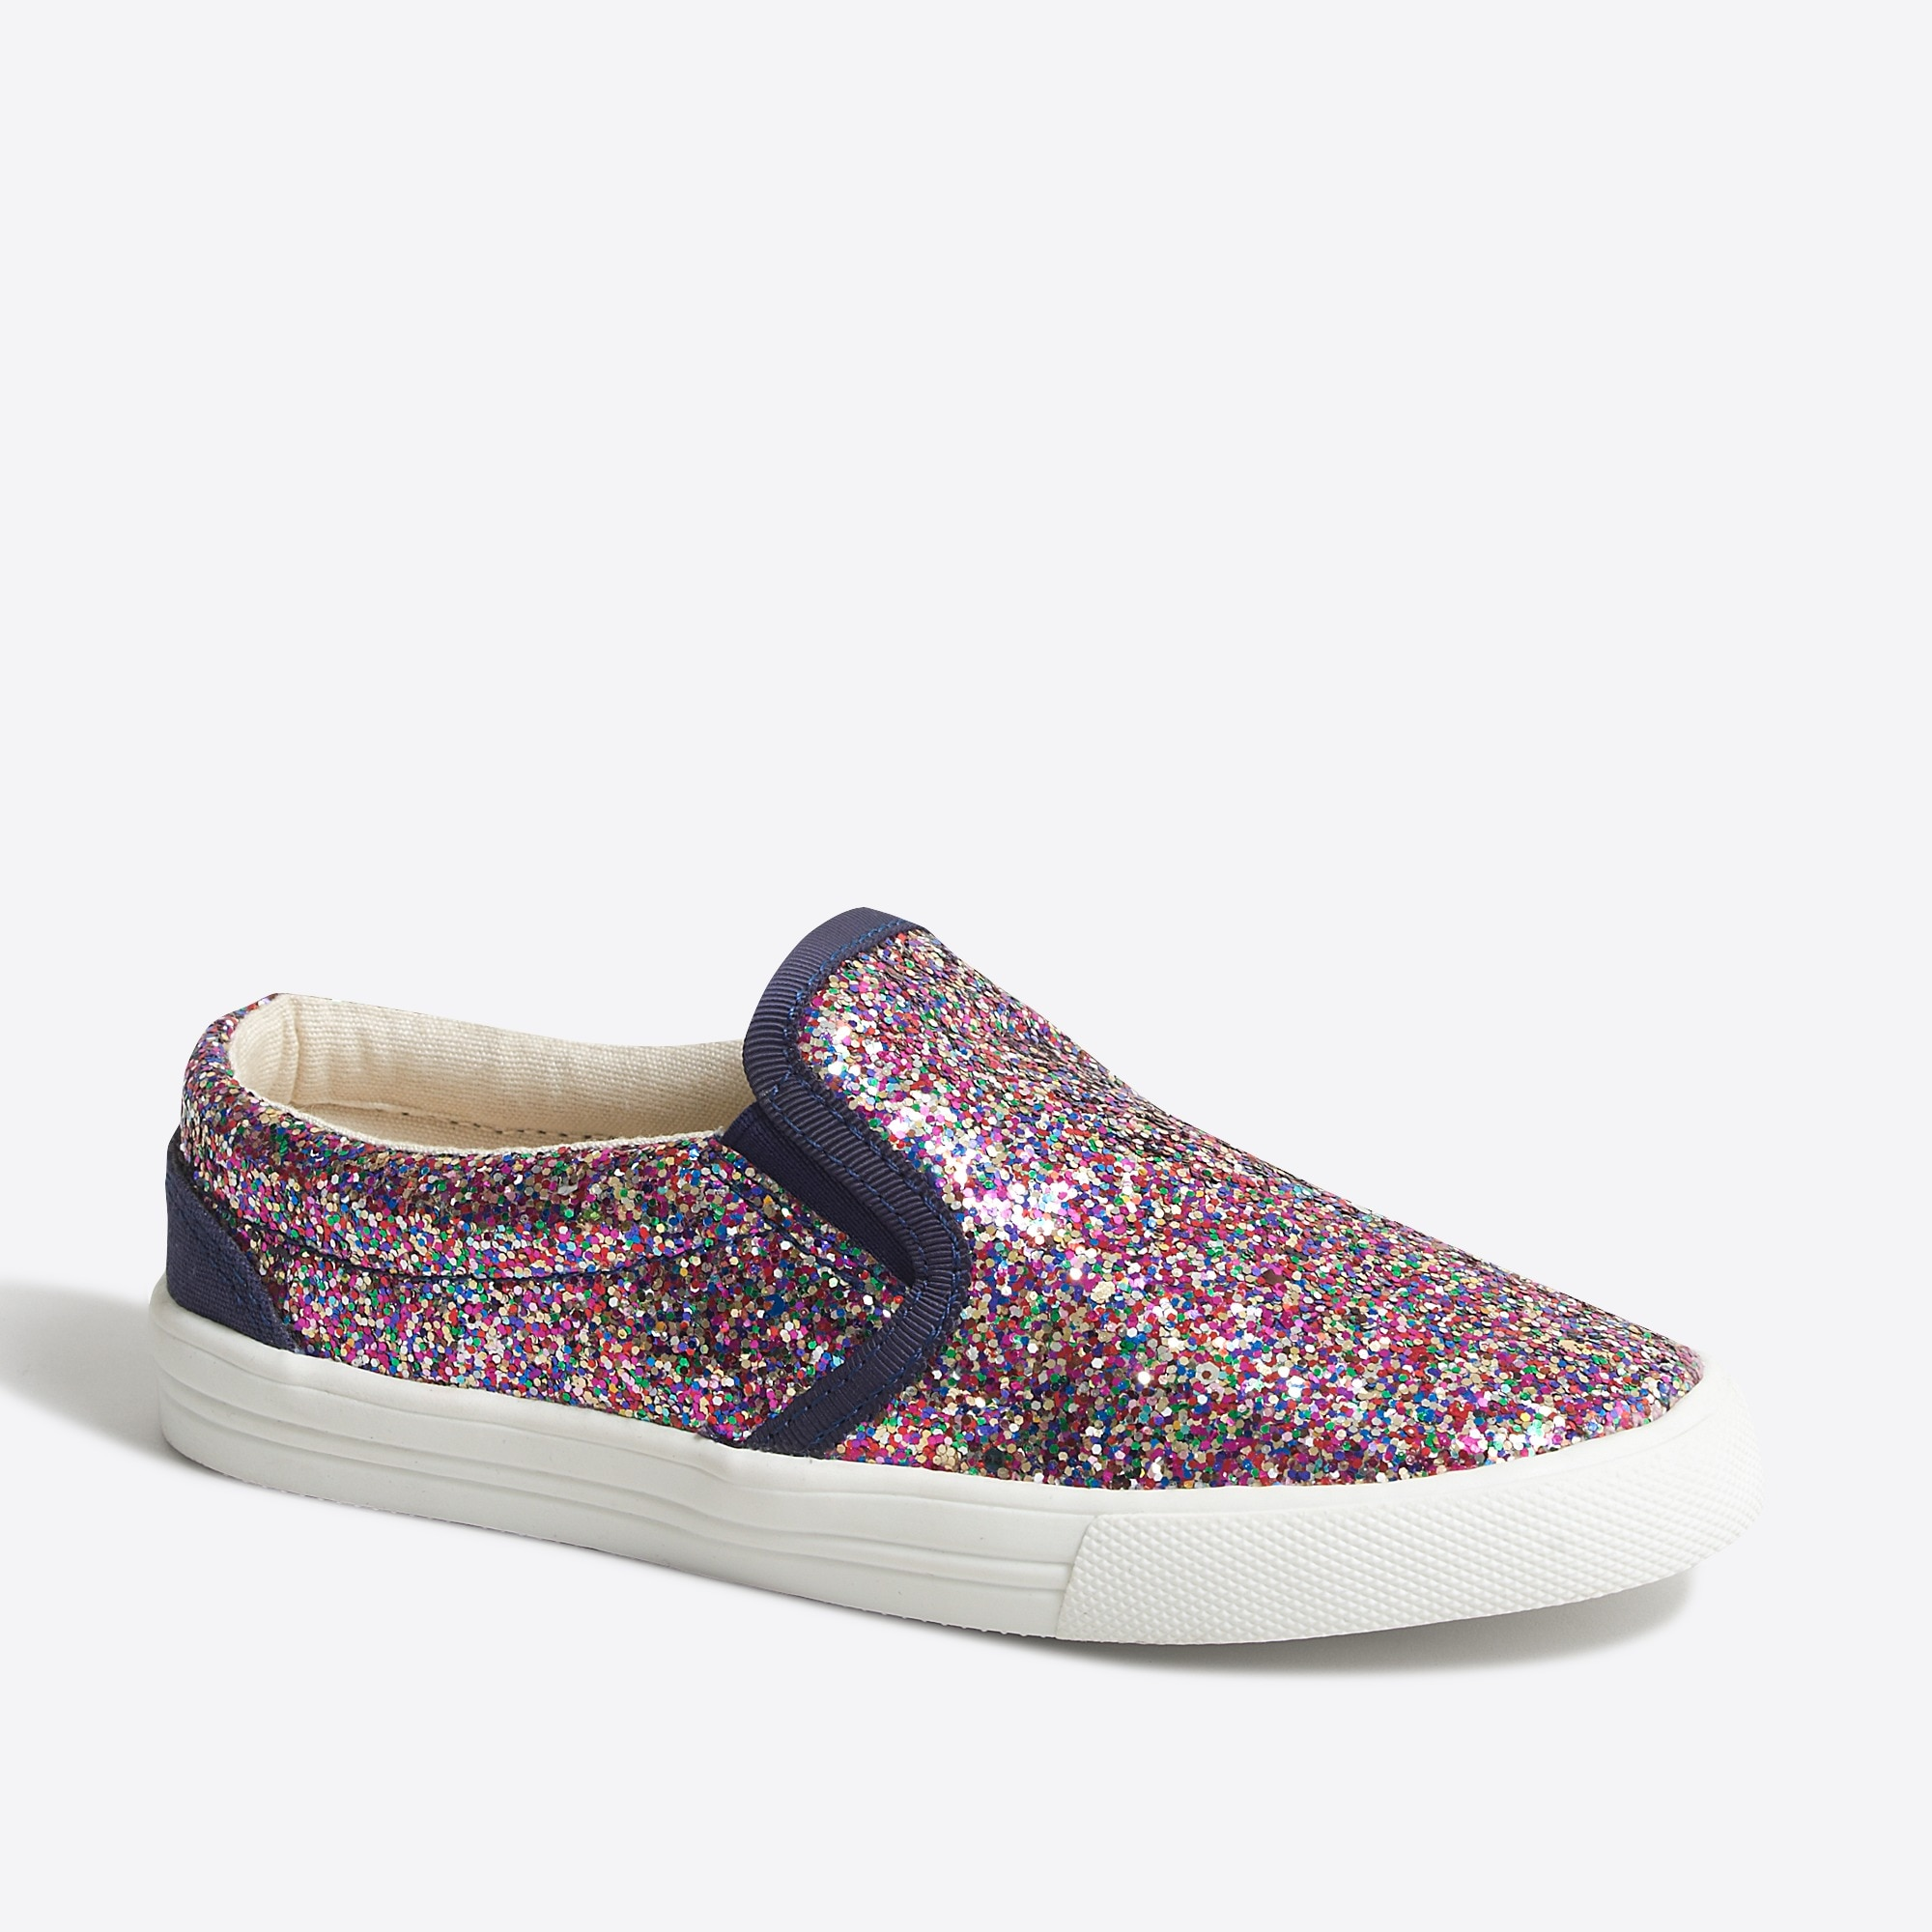 girls' glitter slip-on sneakers : factorygirls shoes